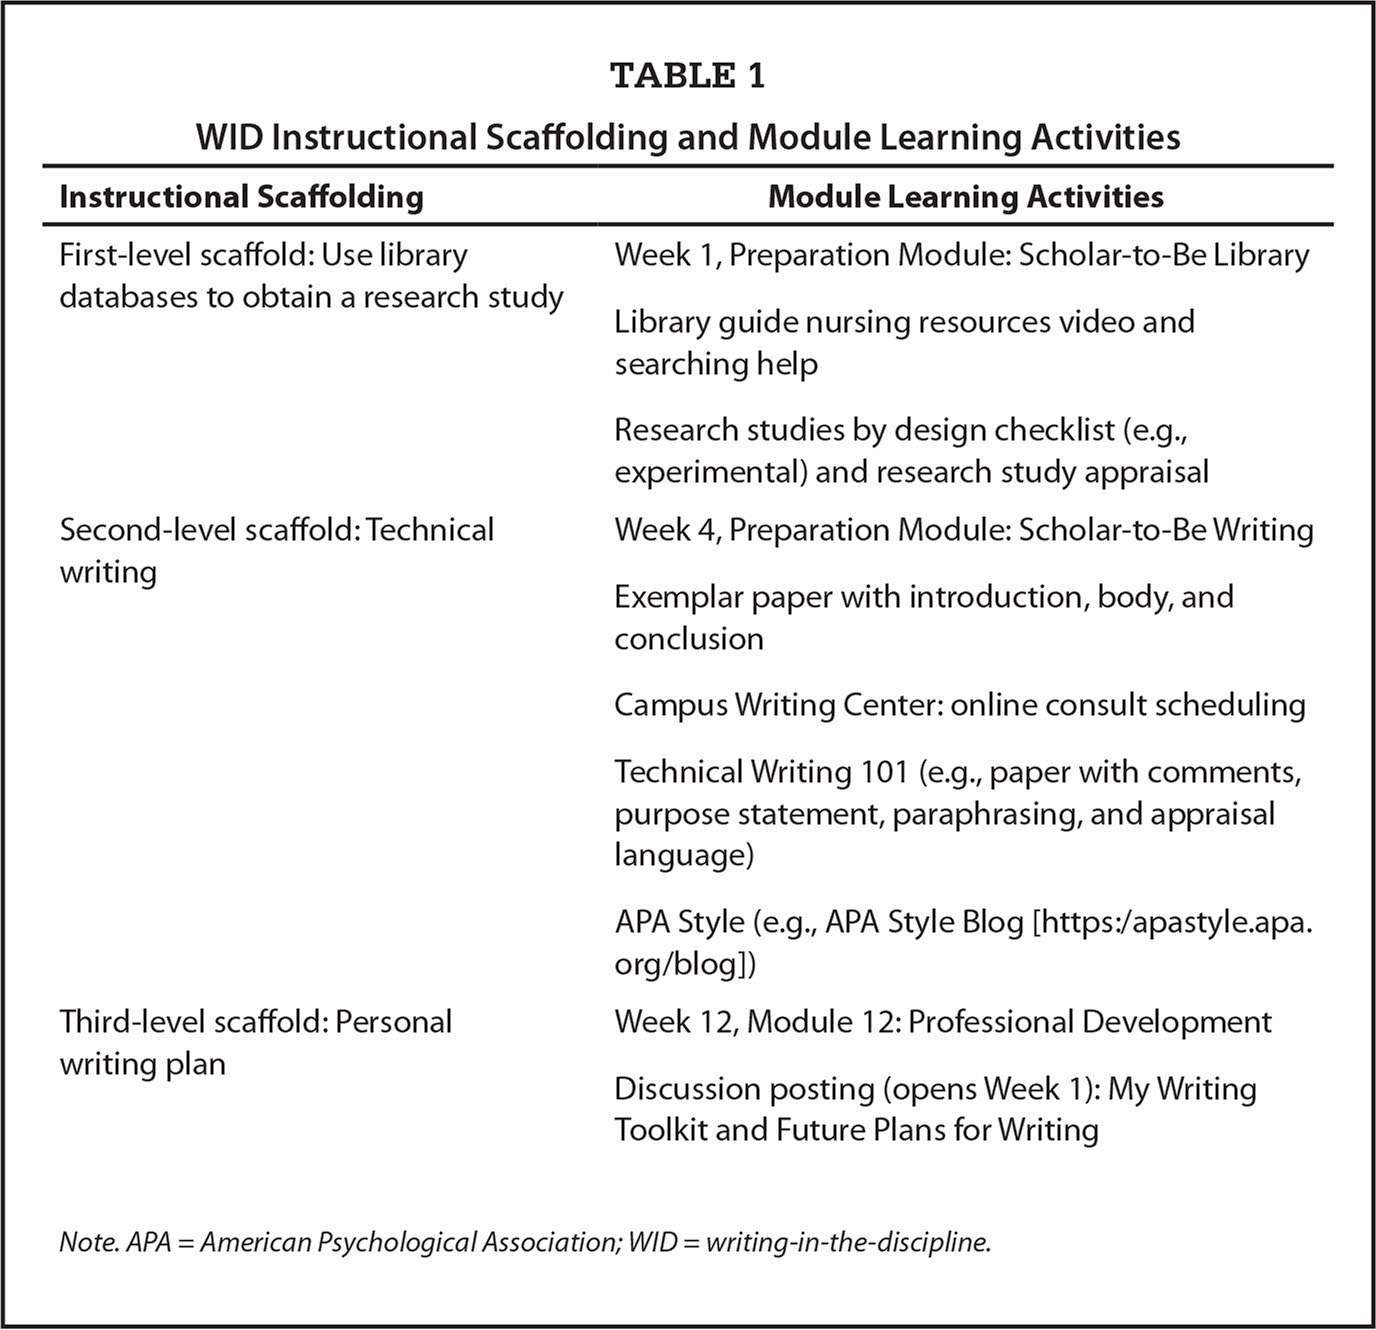 WID Instructional Scaffolding and Module Learning Activities